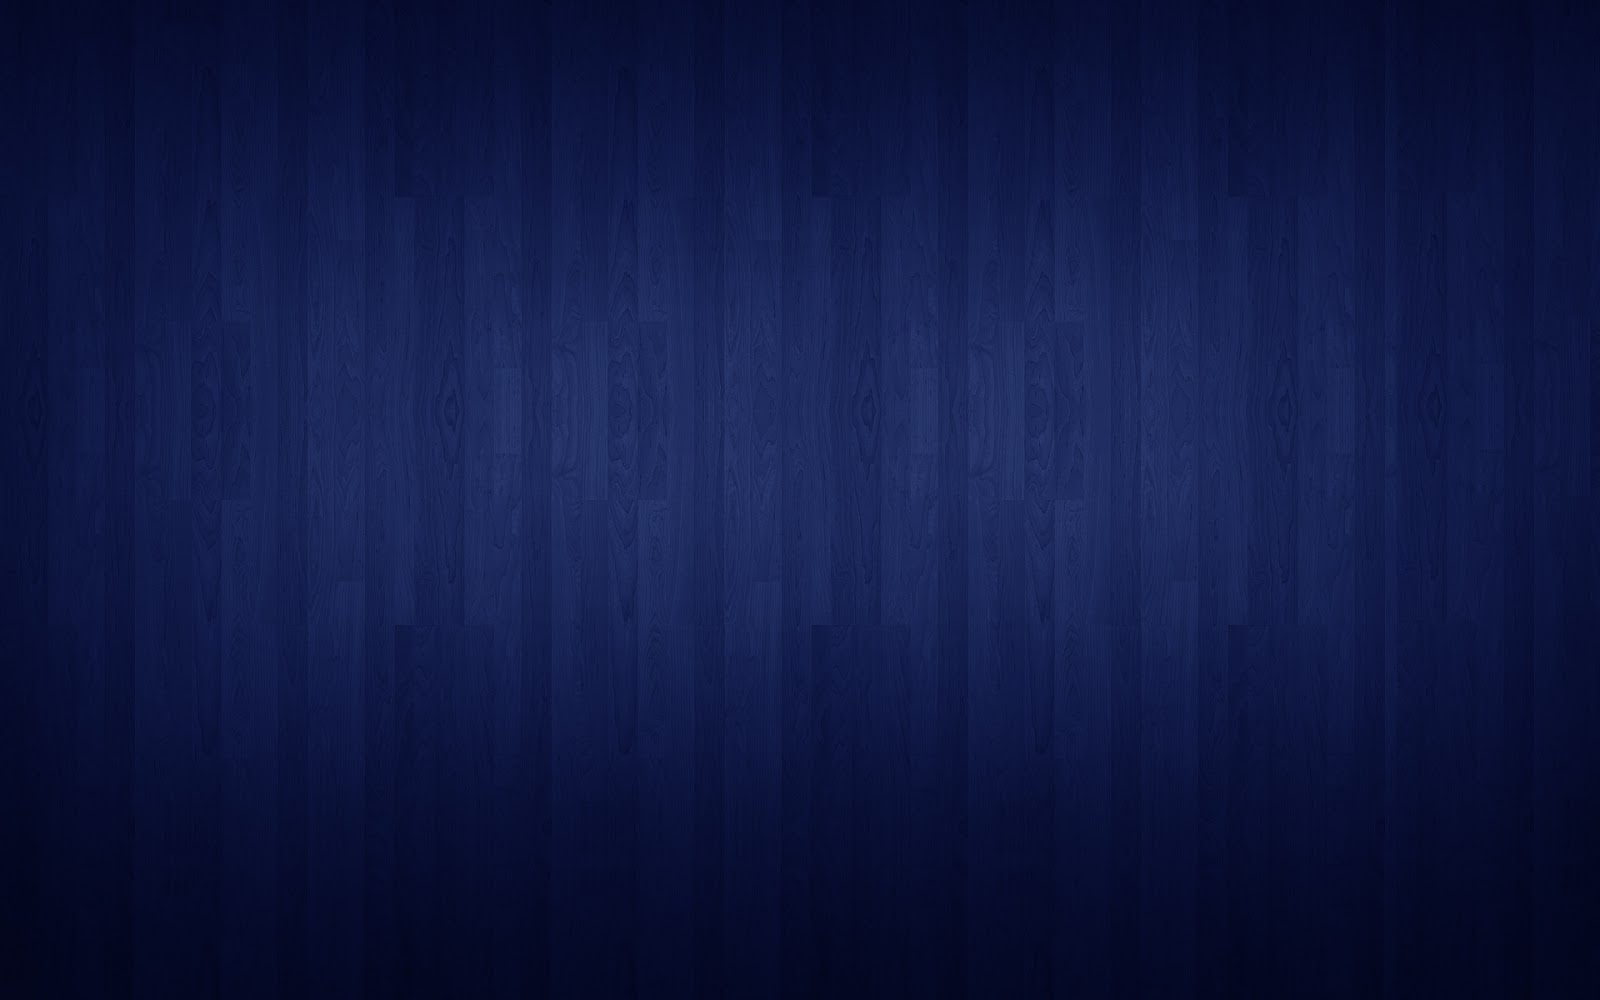 Blue Wood Backgrounds Powerpoint